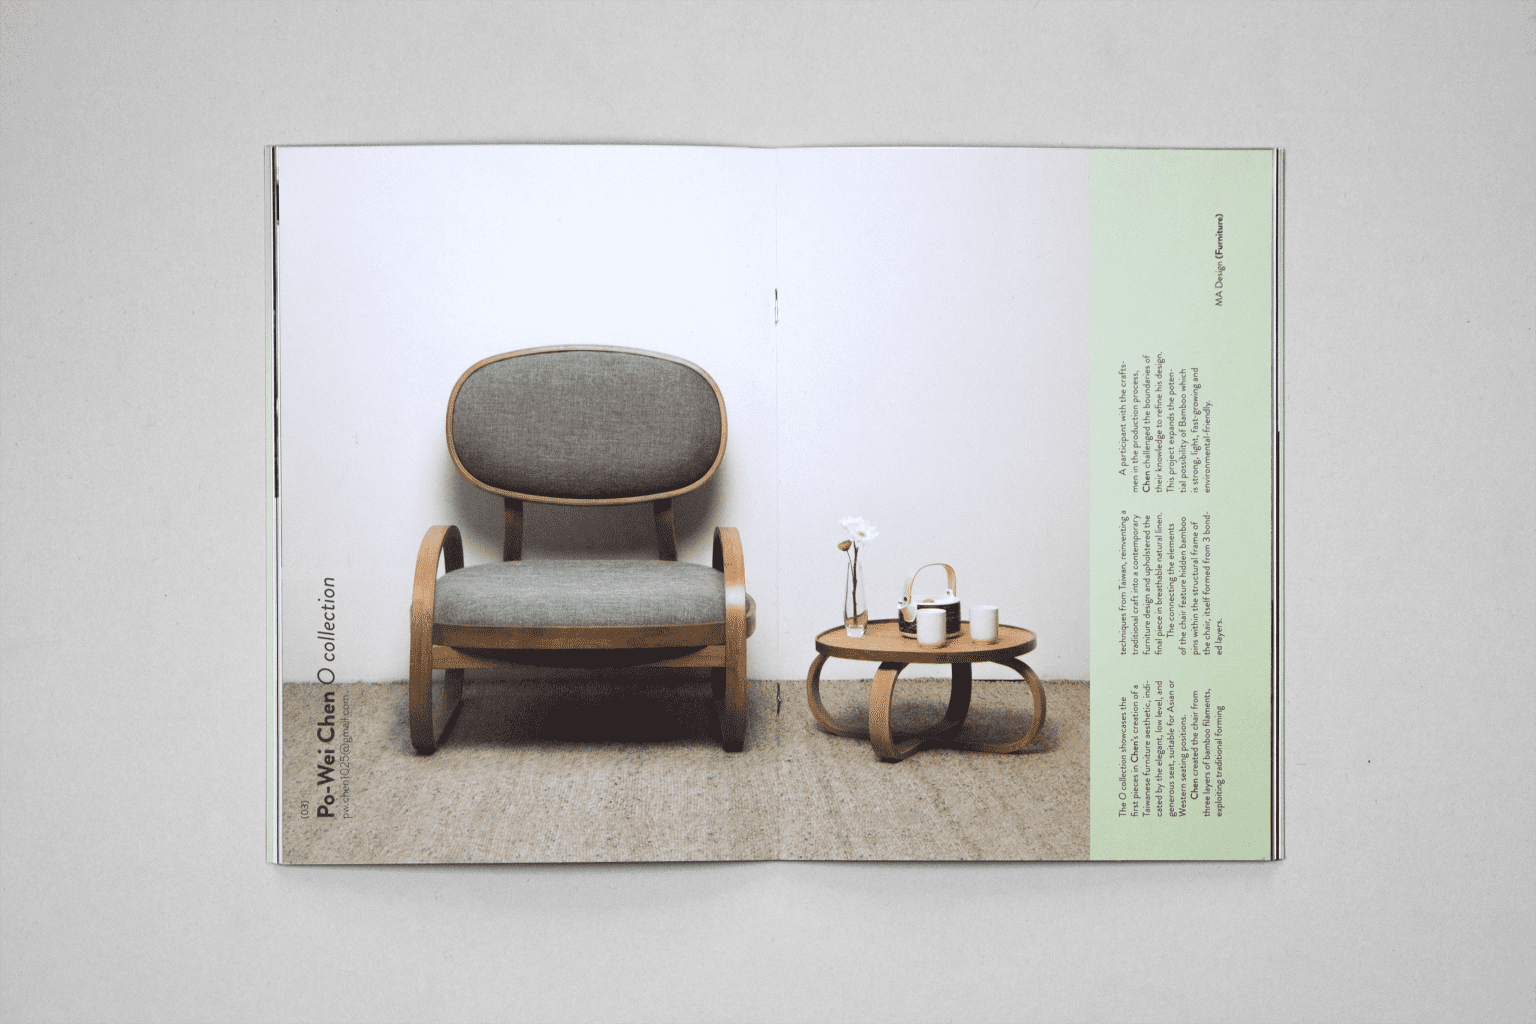 Exhibtion Catalogue for Central Saint Martins Degree Show